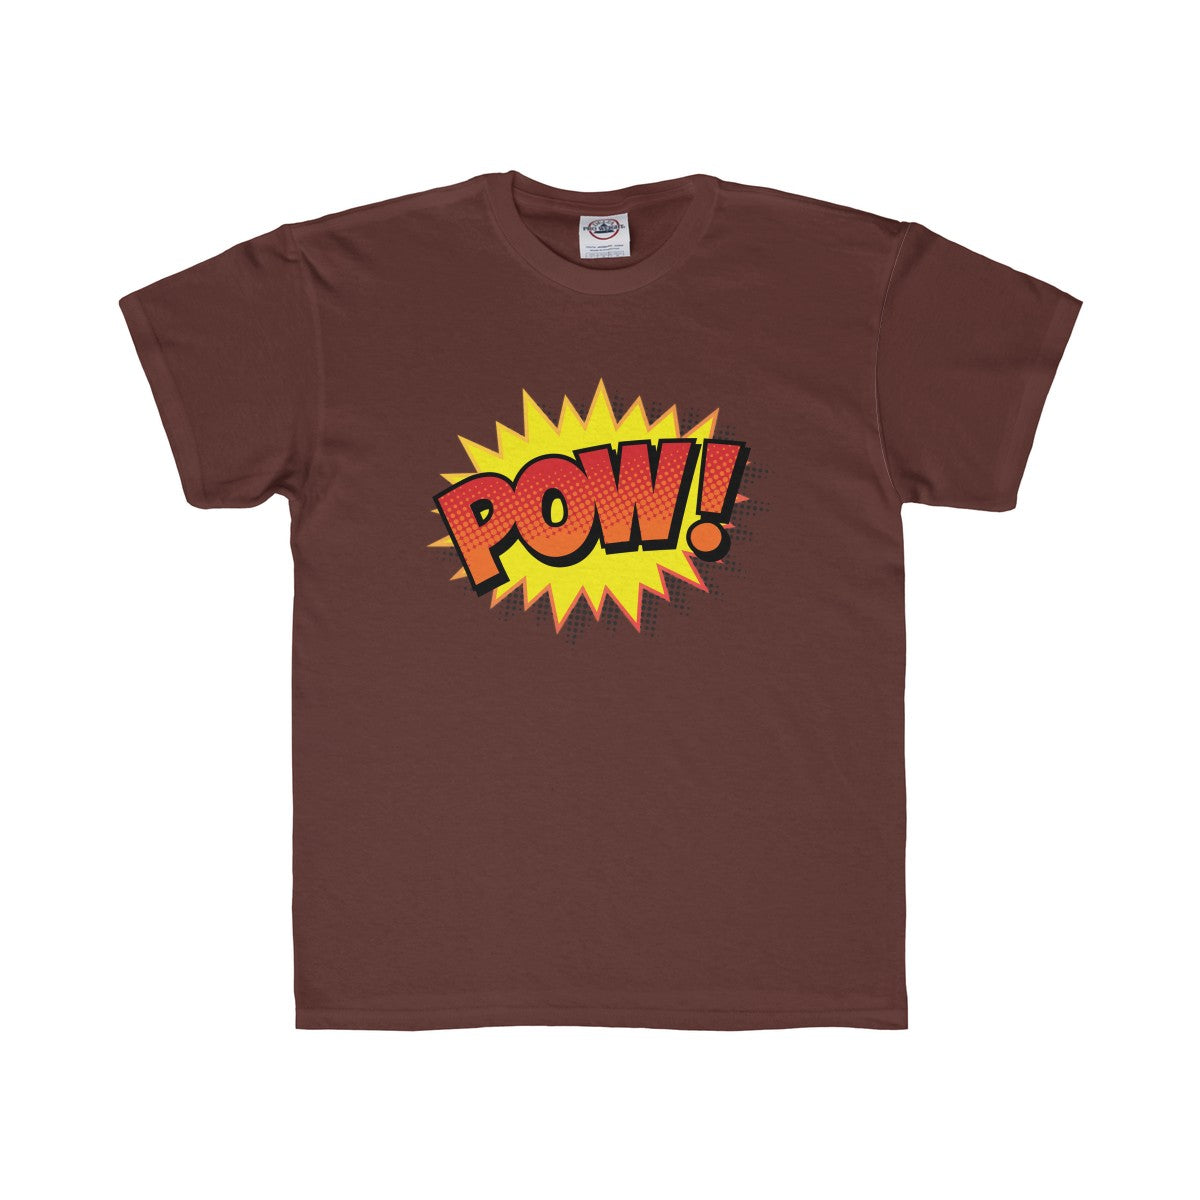 Comic Book Pow! Kids Regular Fit Tee - PureDesignTees